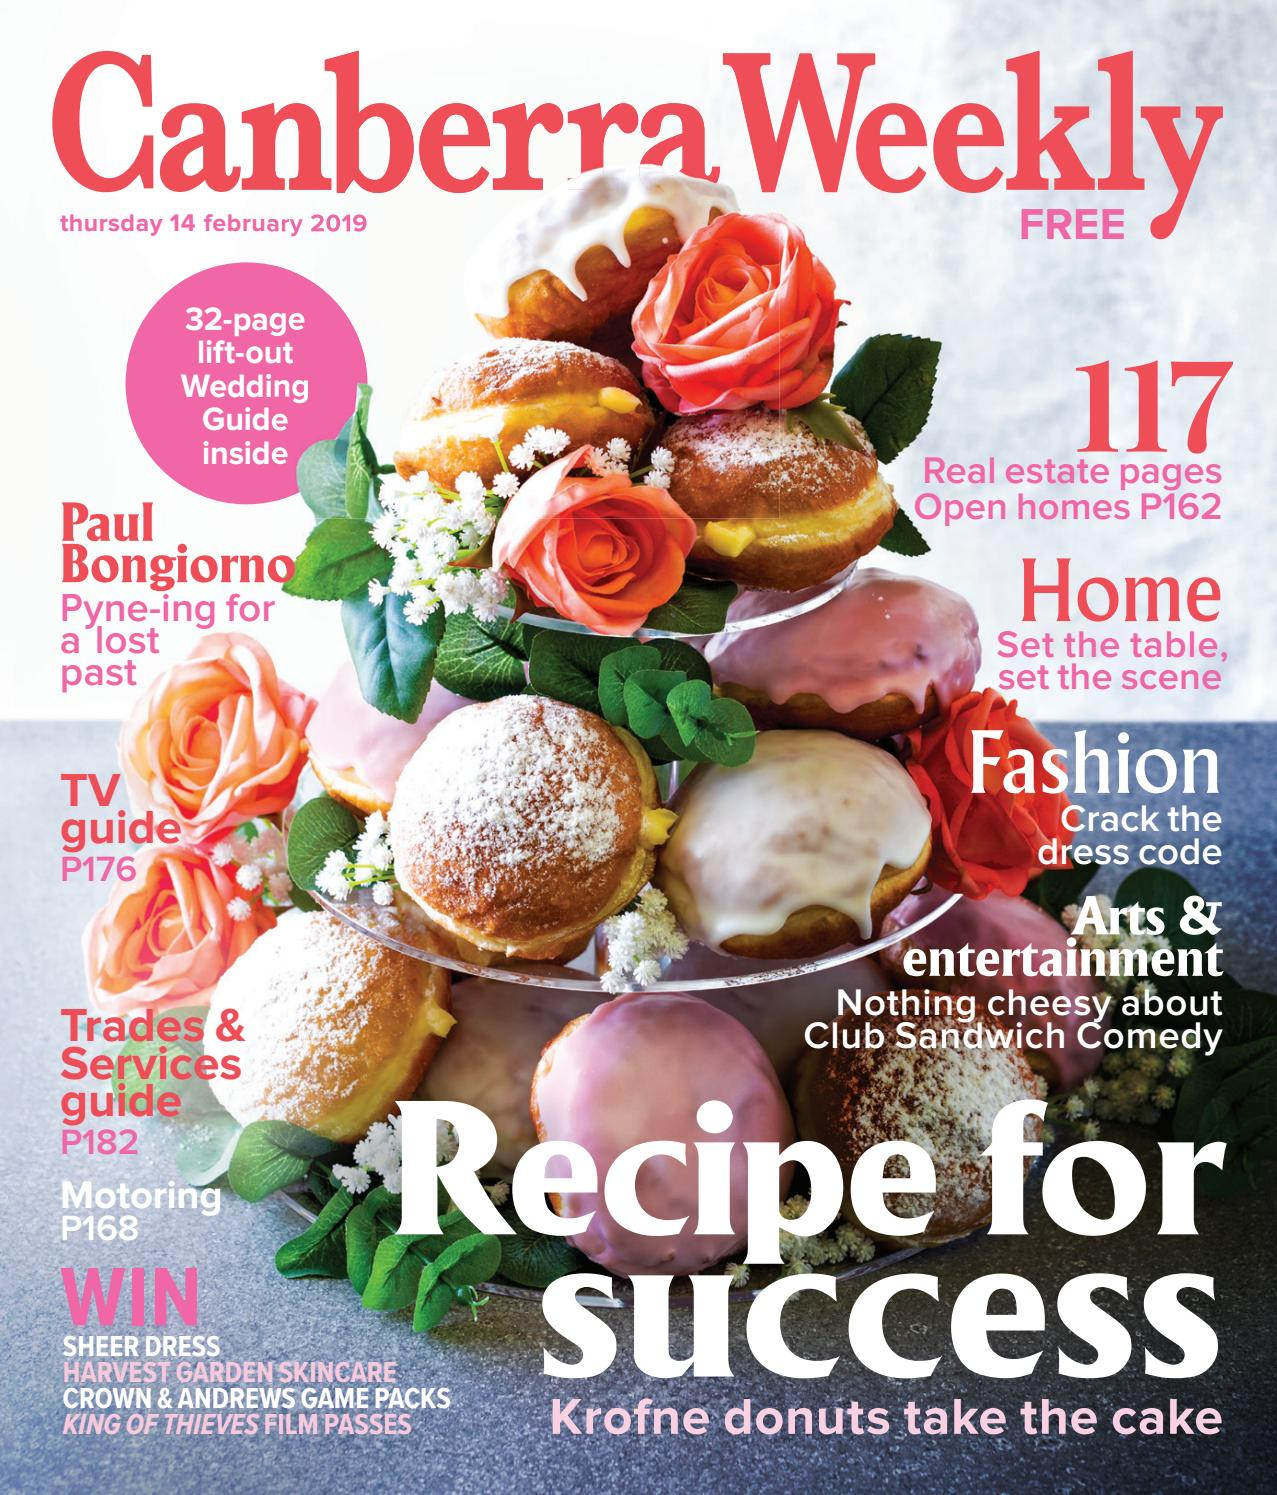 dc07c53833e94 14 February 2019 by Canberra Weekly Magazine - issuu